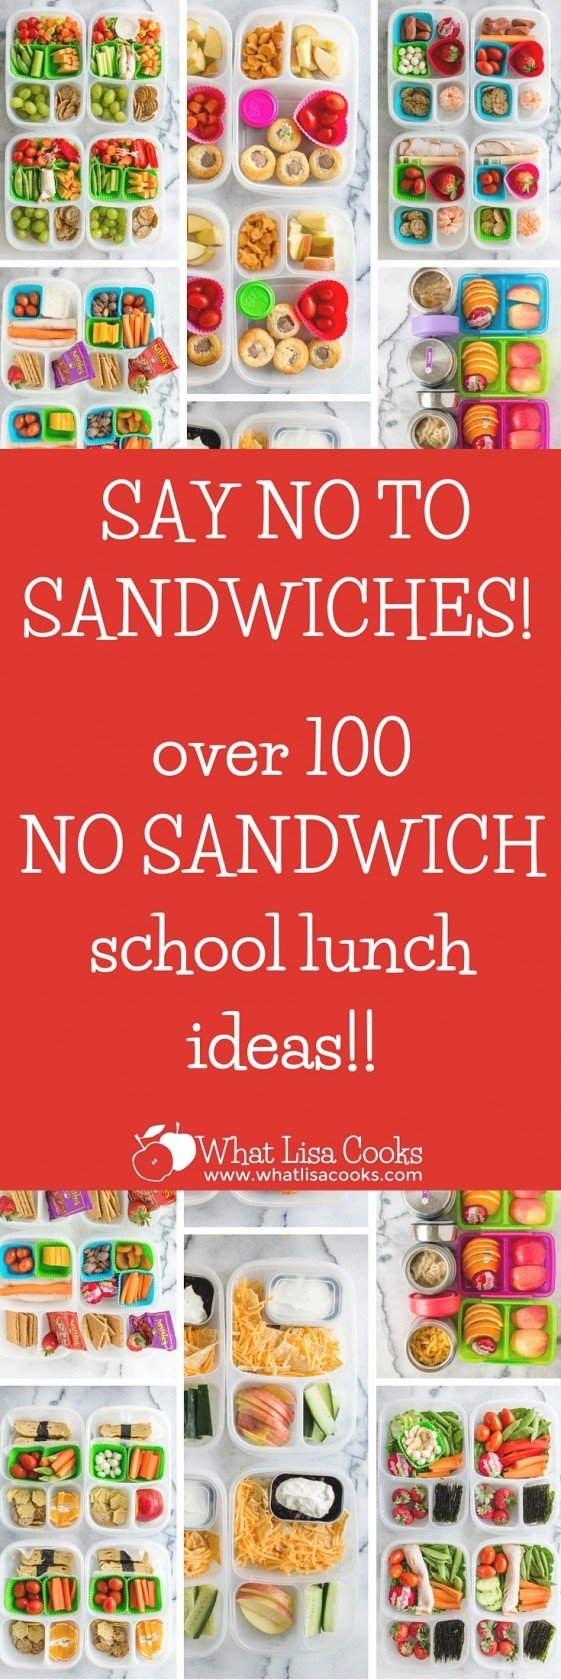 If your kids are tired of sandwiches, check out these Non Sandwich Lunch Ideas. 20 non sandwich lunch ideas for kids that even the pickiest eater will enjoy. Easy lunch ideas for kids that are yummy. Try Cold lunch ideas for kids. School lunch ideas for kids that are not boring.